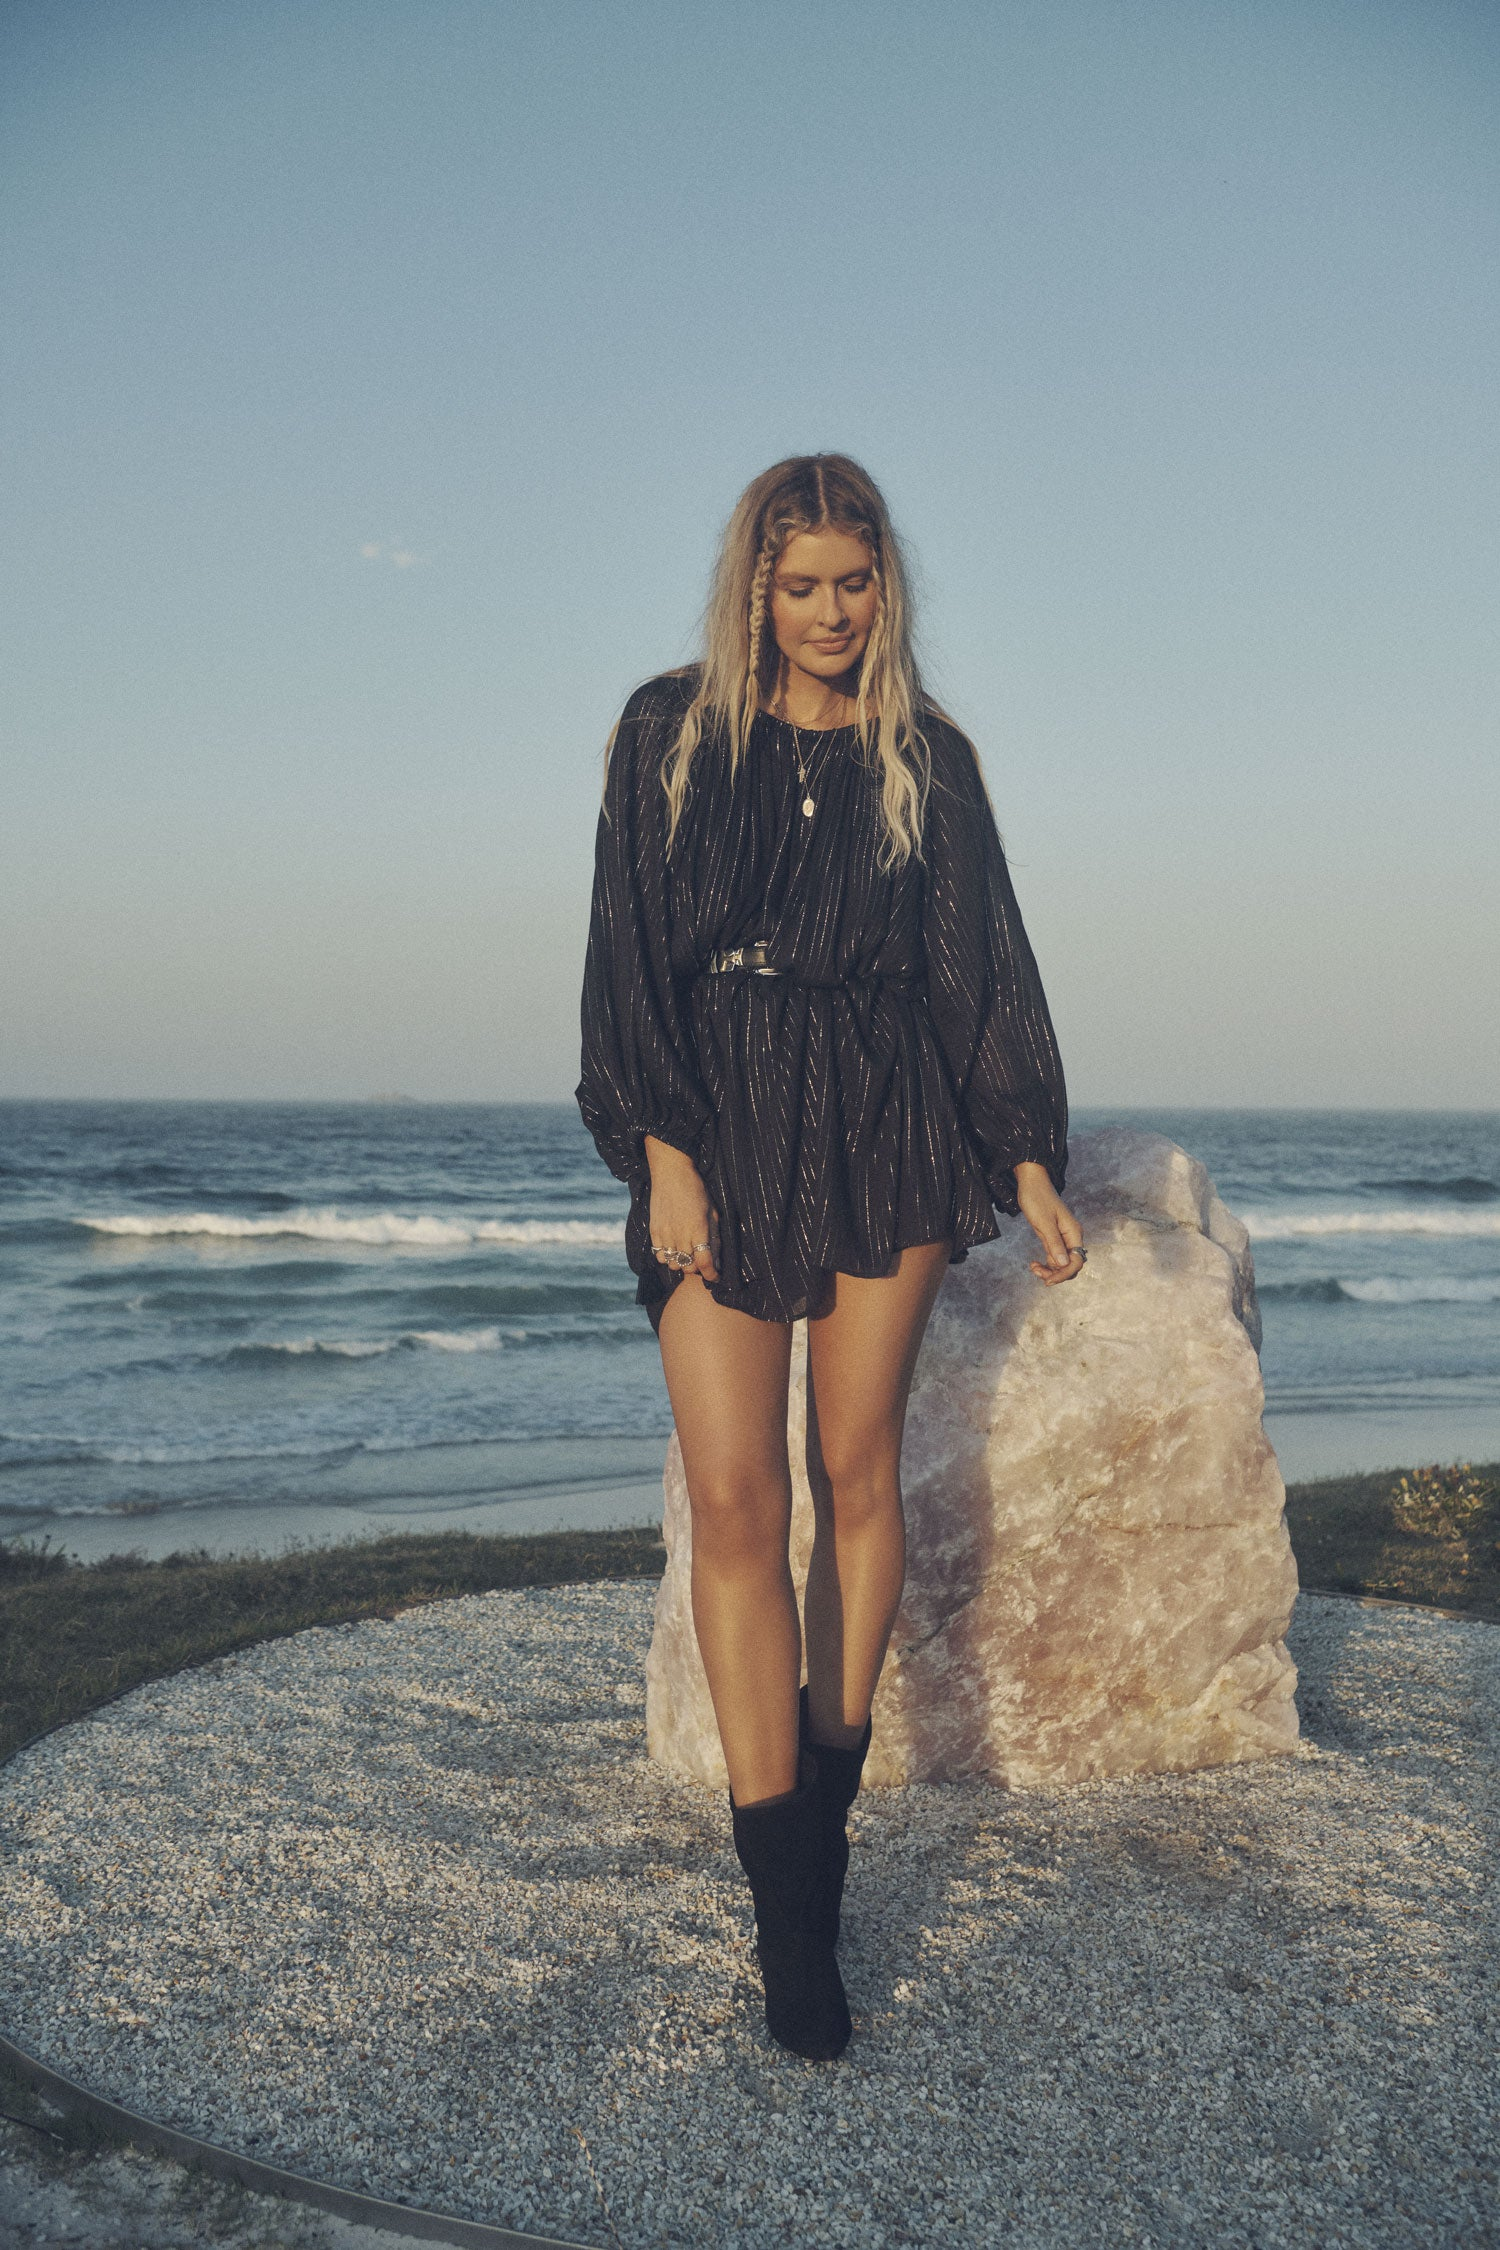 Influencer and model, Elle Ferguson, posing in front of a large crystal with the beach in the background while wearing gold jewellery, a black belt, the Spell Cult Suede Slouch Boots and the Spell black, metallic Jagger Mini Dress with elasticated cuffs.